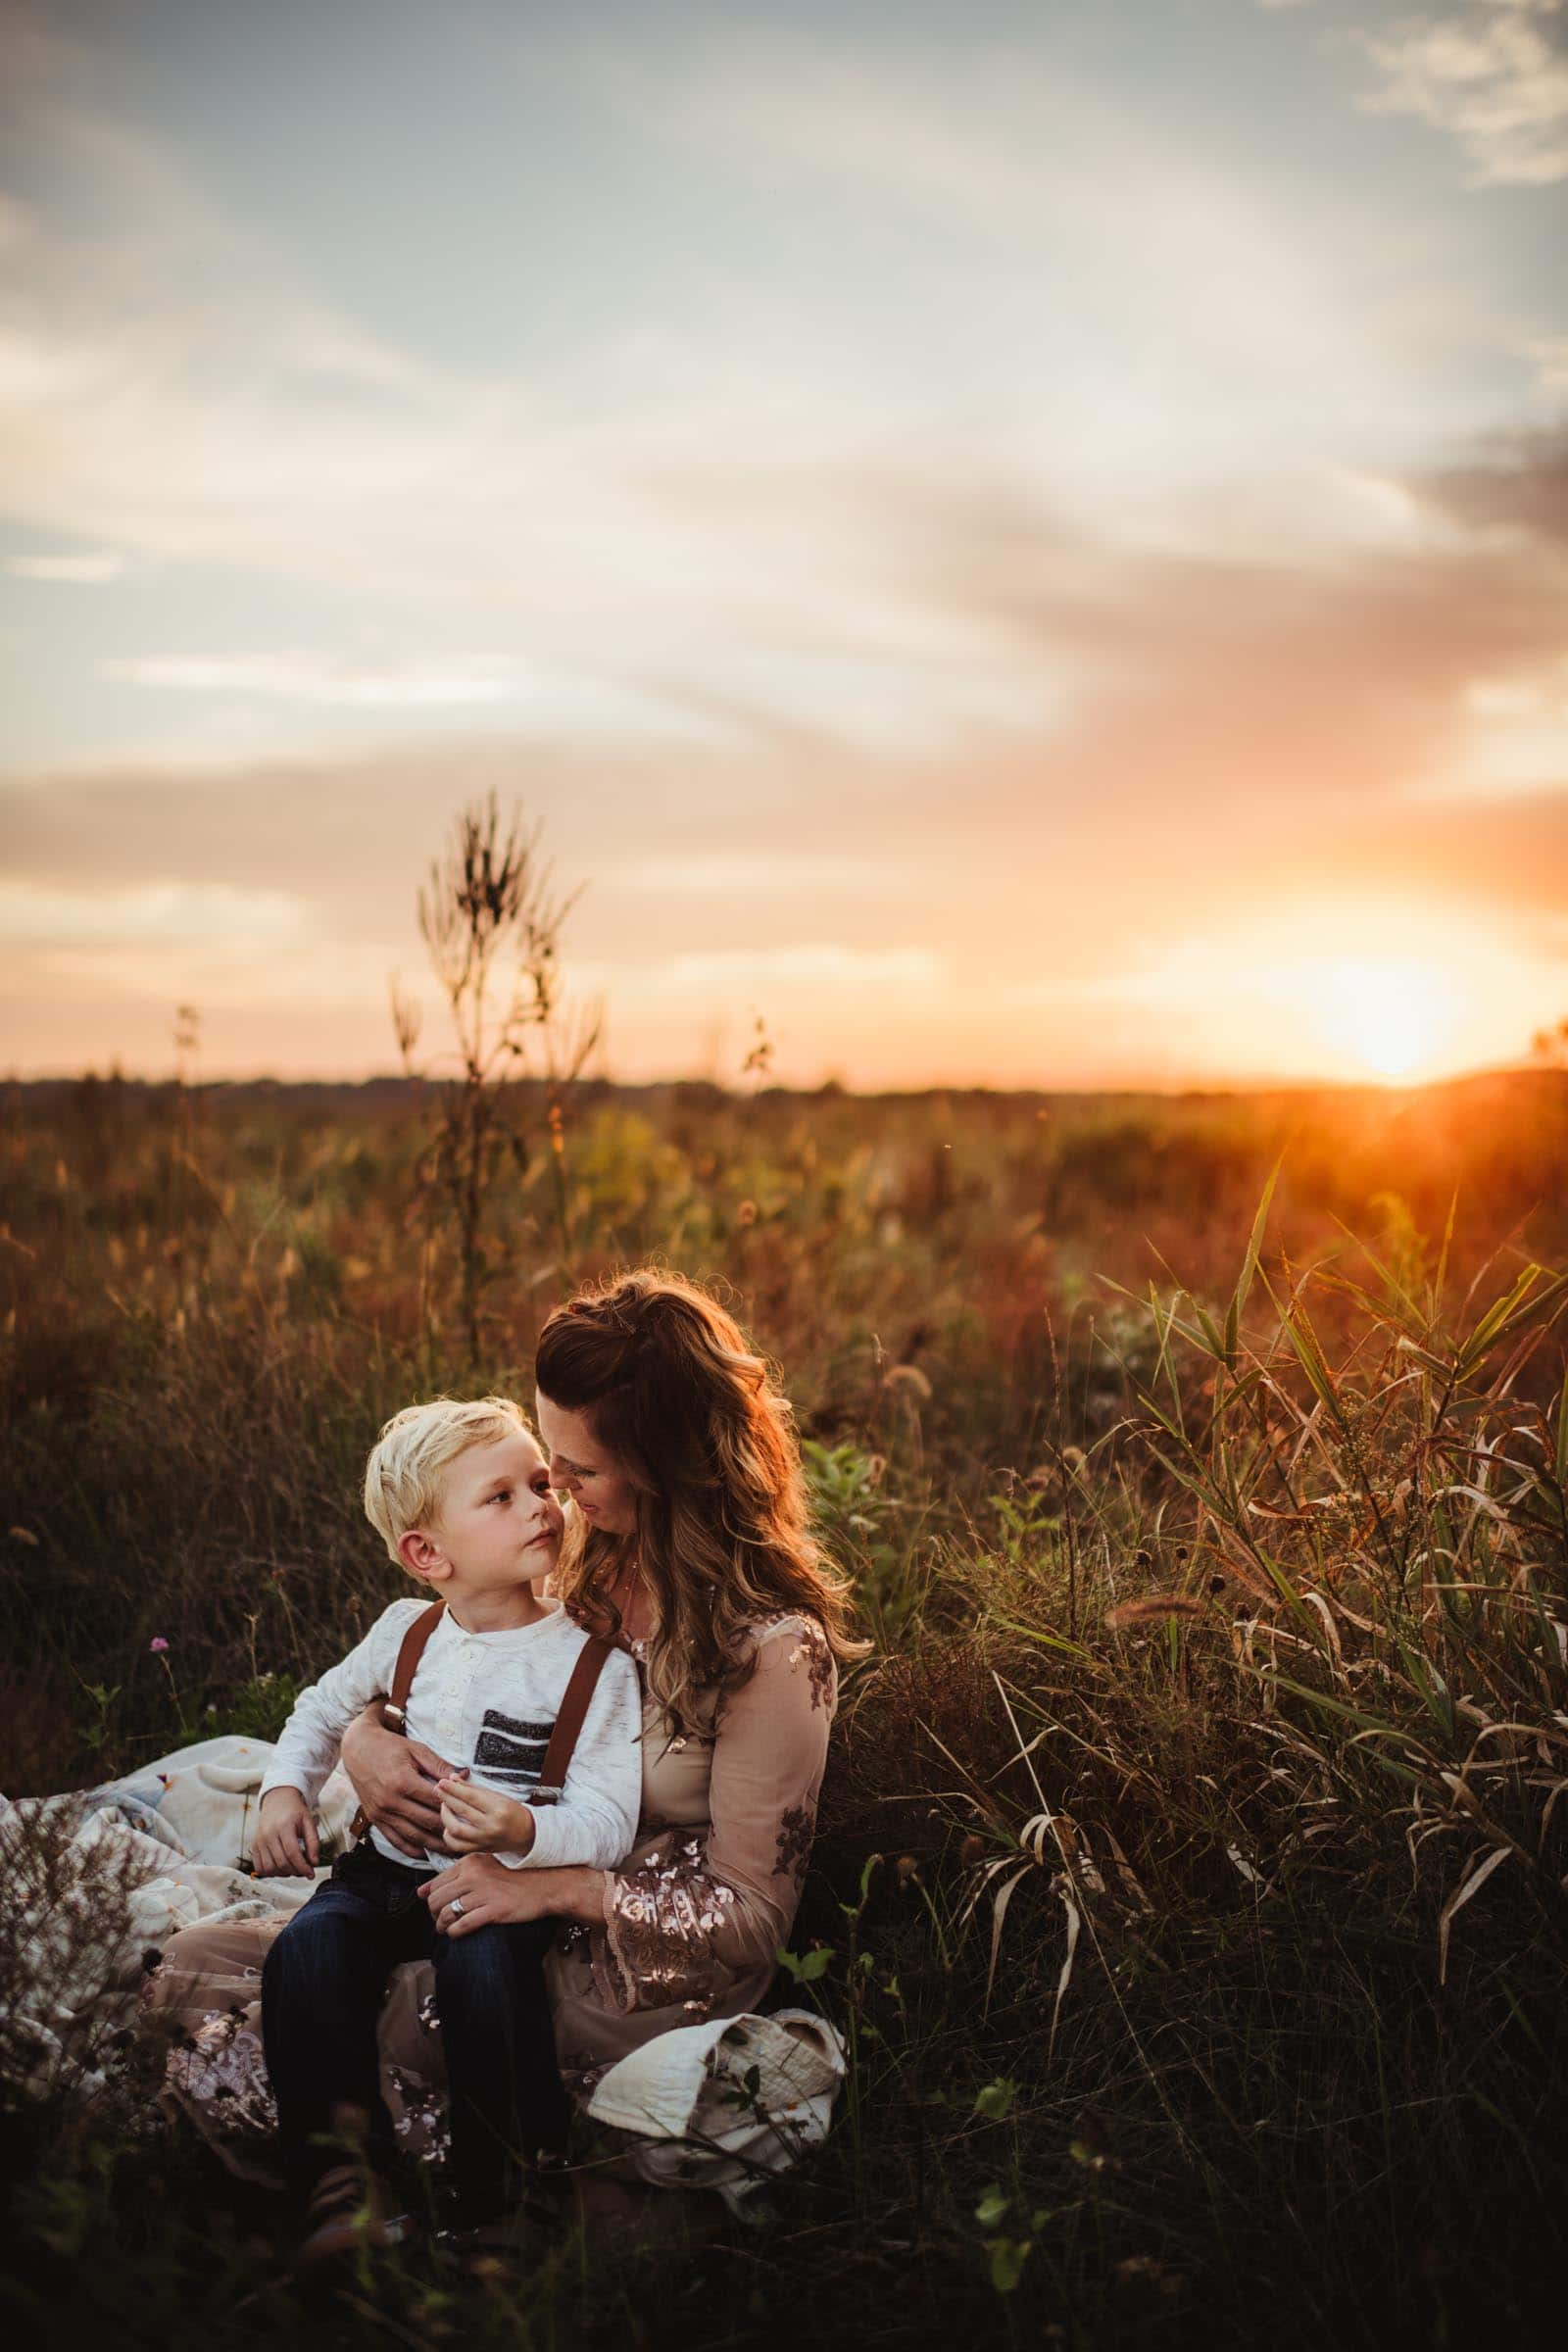 son listening to mother while on her lap in a field